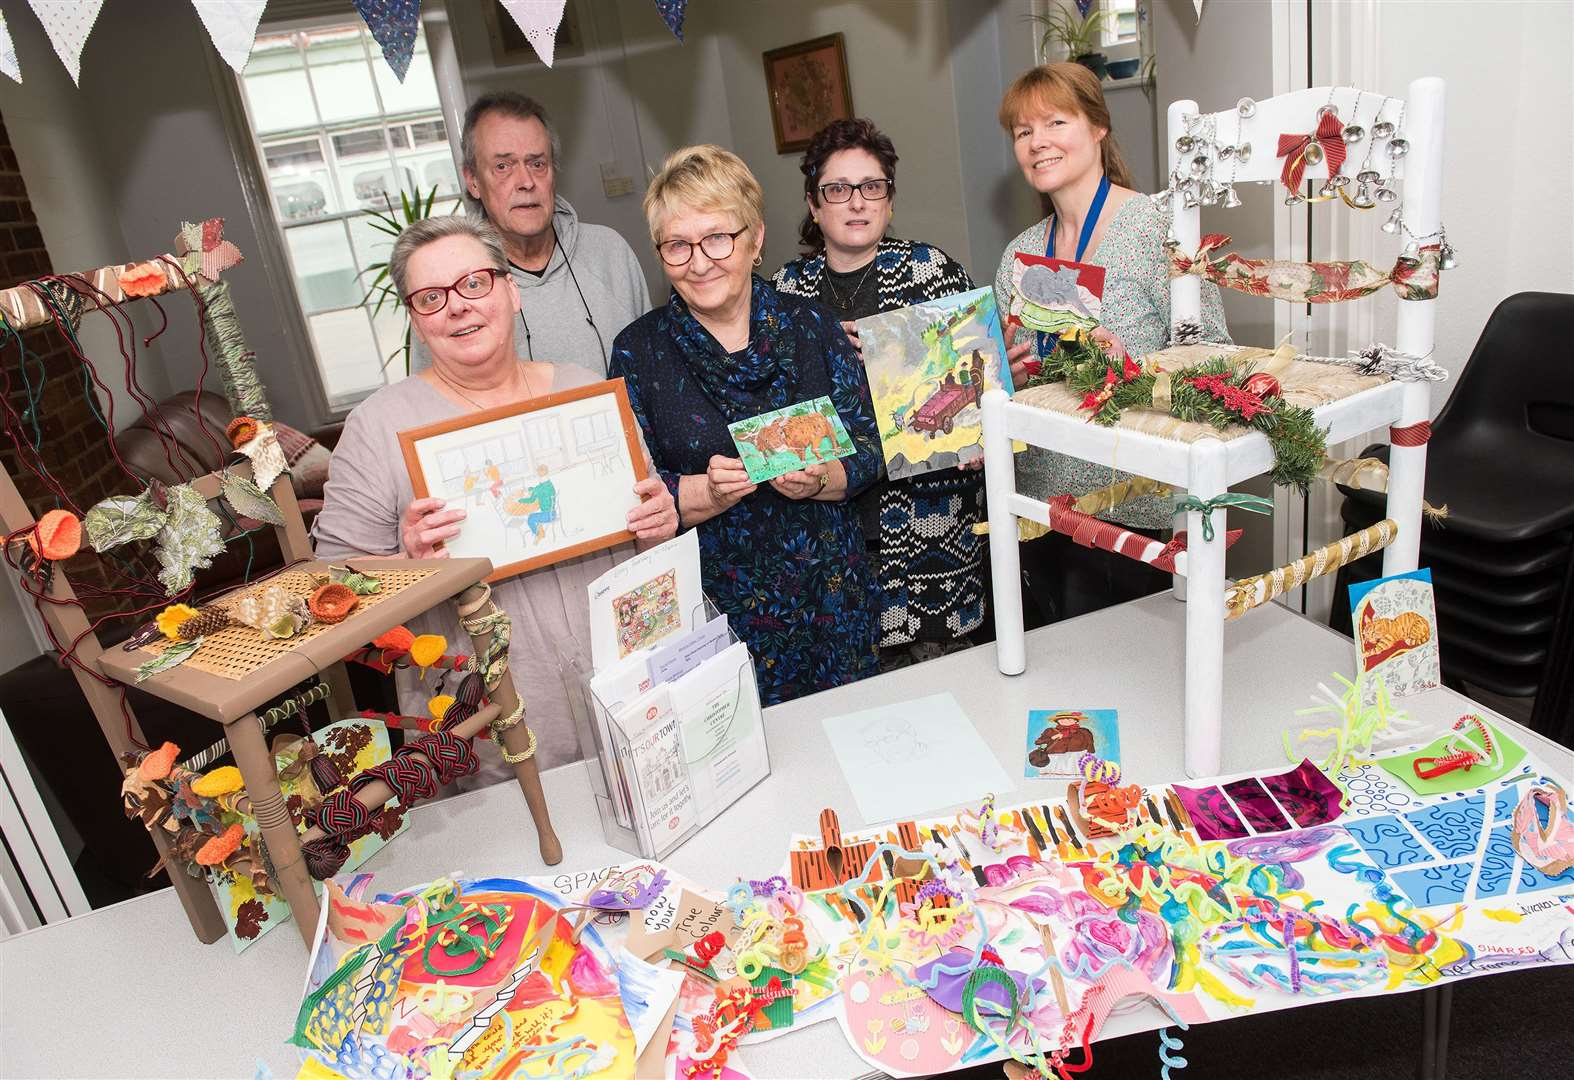 FEATURE: C'Art group in Sudbury supports people with mental health difficulties